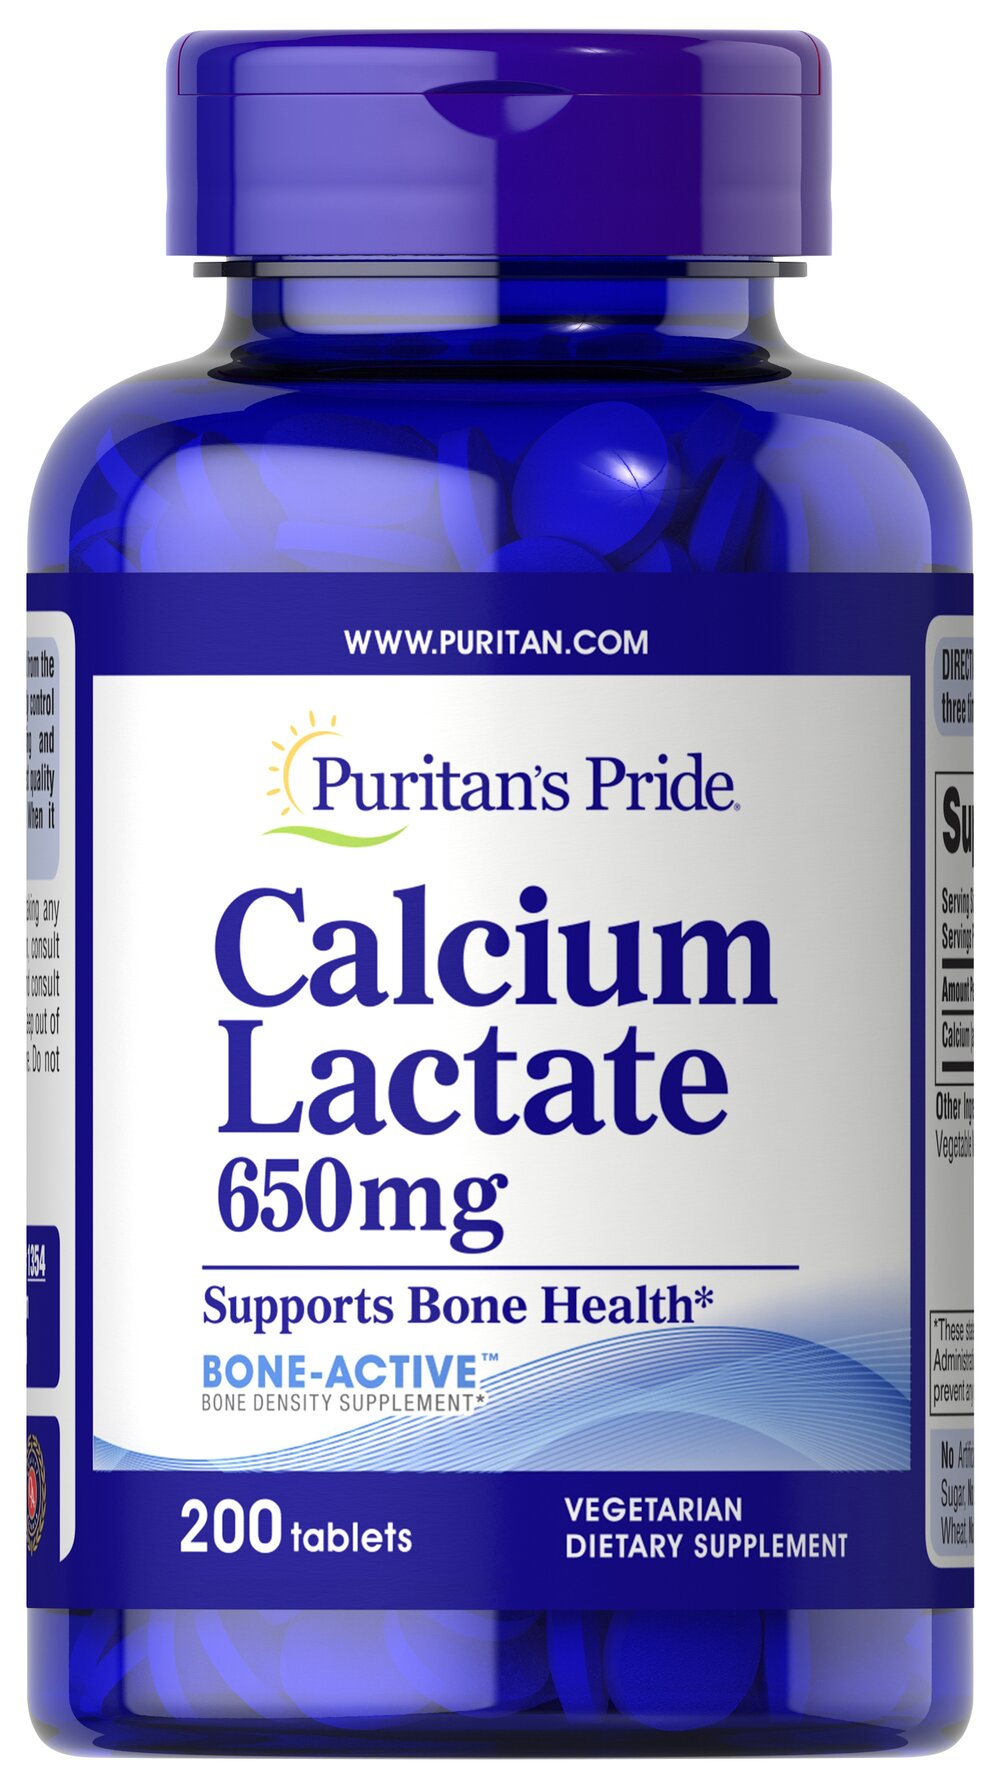 Calcium Lactate 650 mg Thumbnail Alternate Bottle View